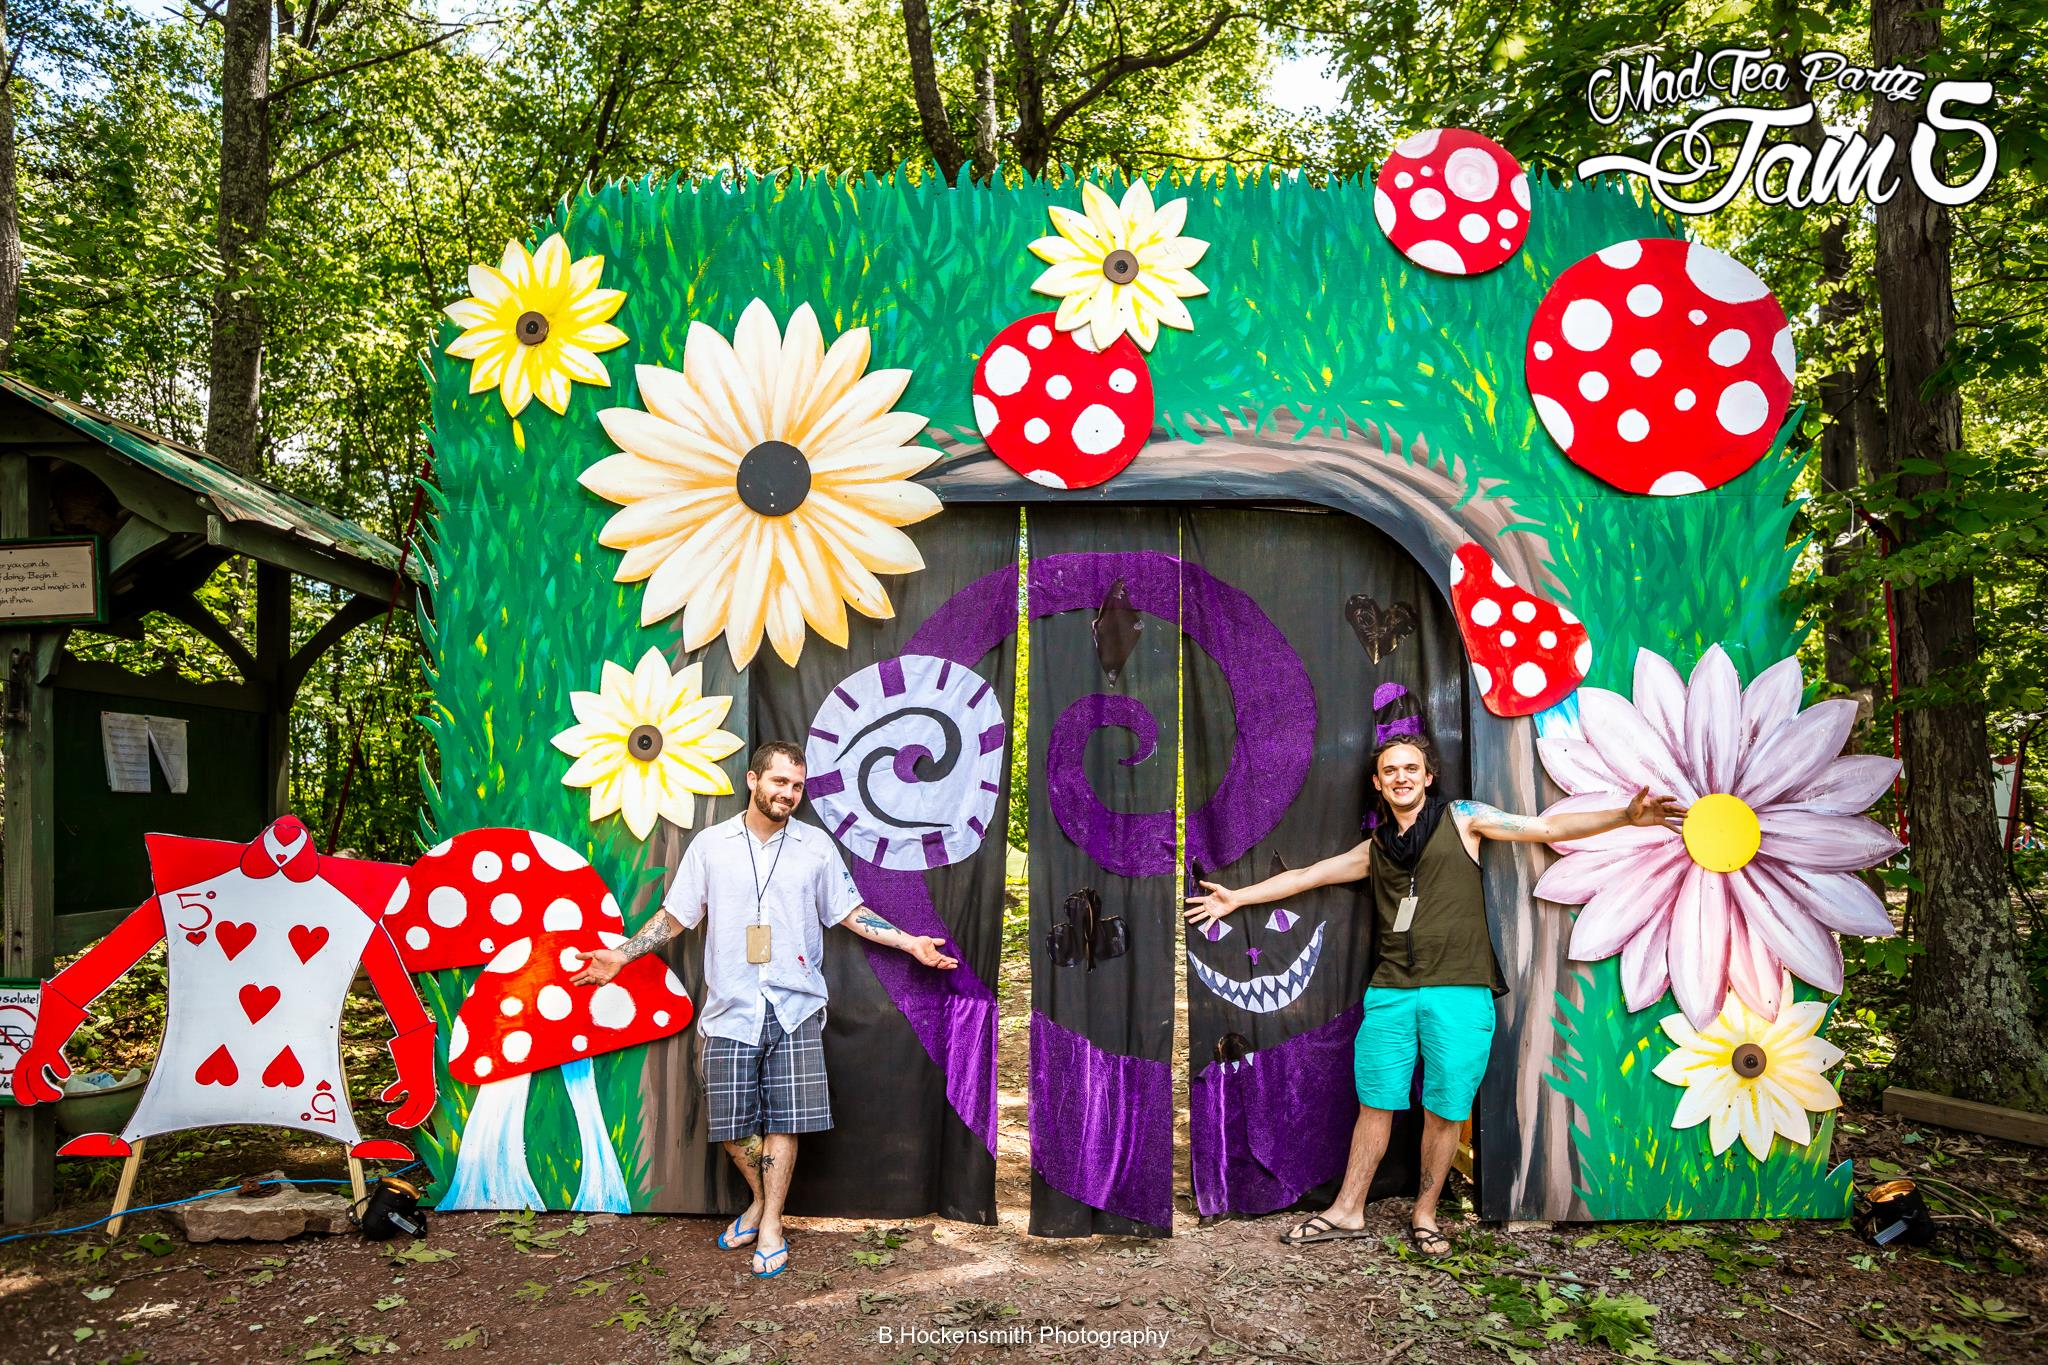 Photo by Brian Hockensmith (B. Hockensmith Photography) - Click    HERE   to view more of Brian's amazing photos from Mad Tea Party Jam 5